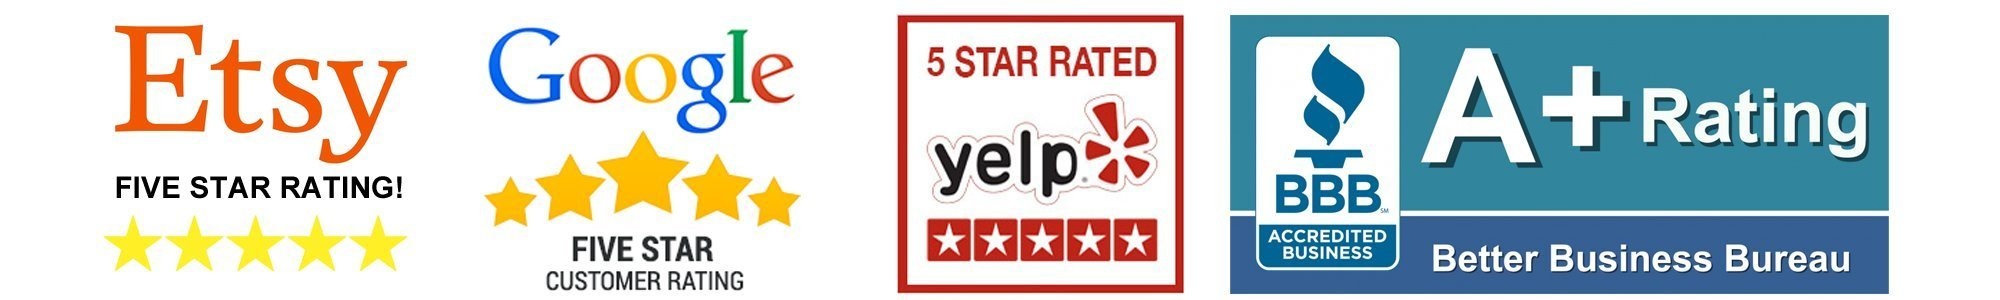 CONTINUOUSLY 5 STAR RATED!